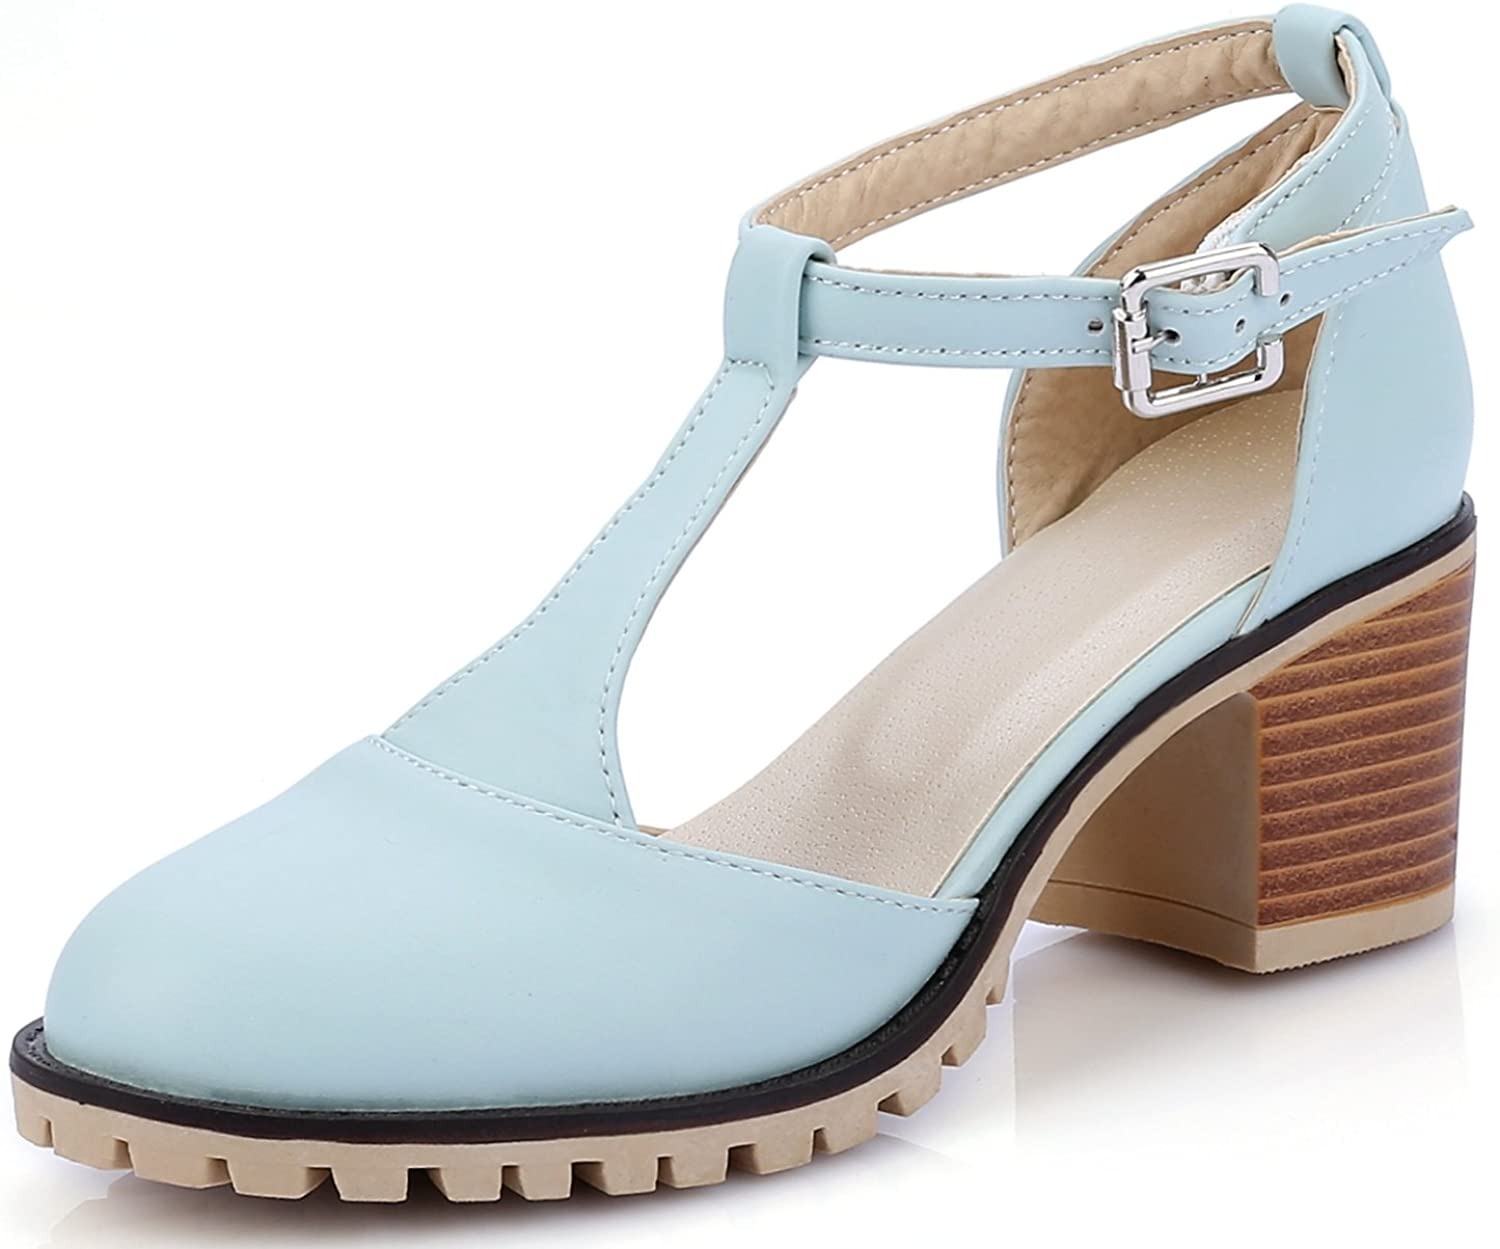 DoraTasia Women's Casual Round Toe Ankle Buckle T-Strap shoes Sweet Chunky Heel Ankle High Leather Mary Jane shoes